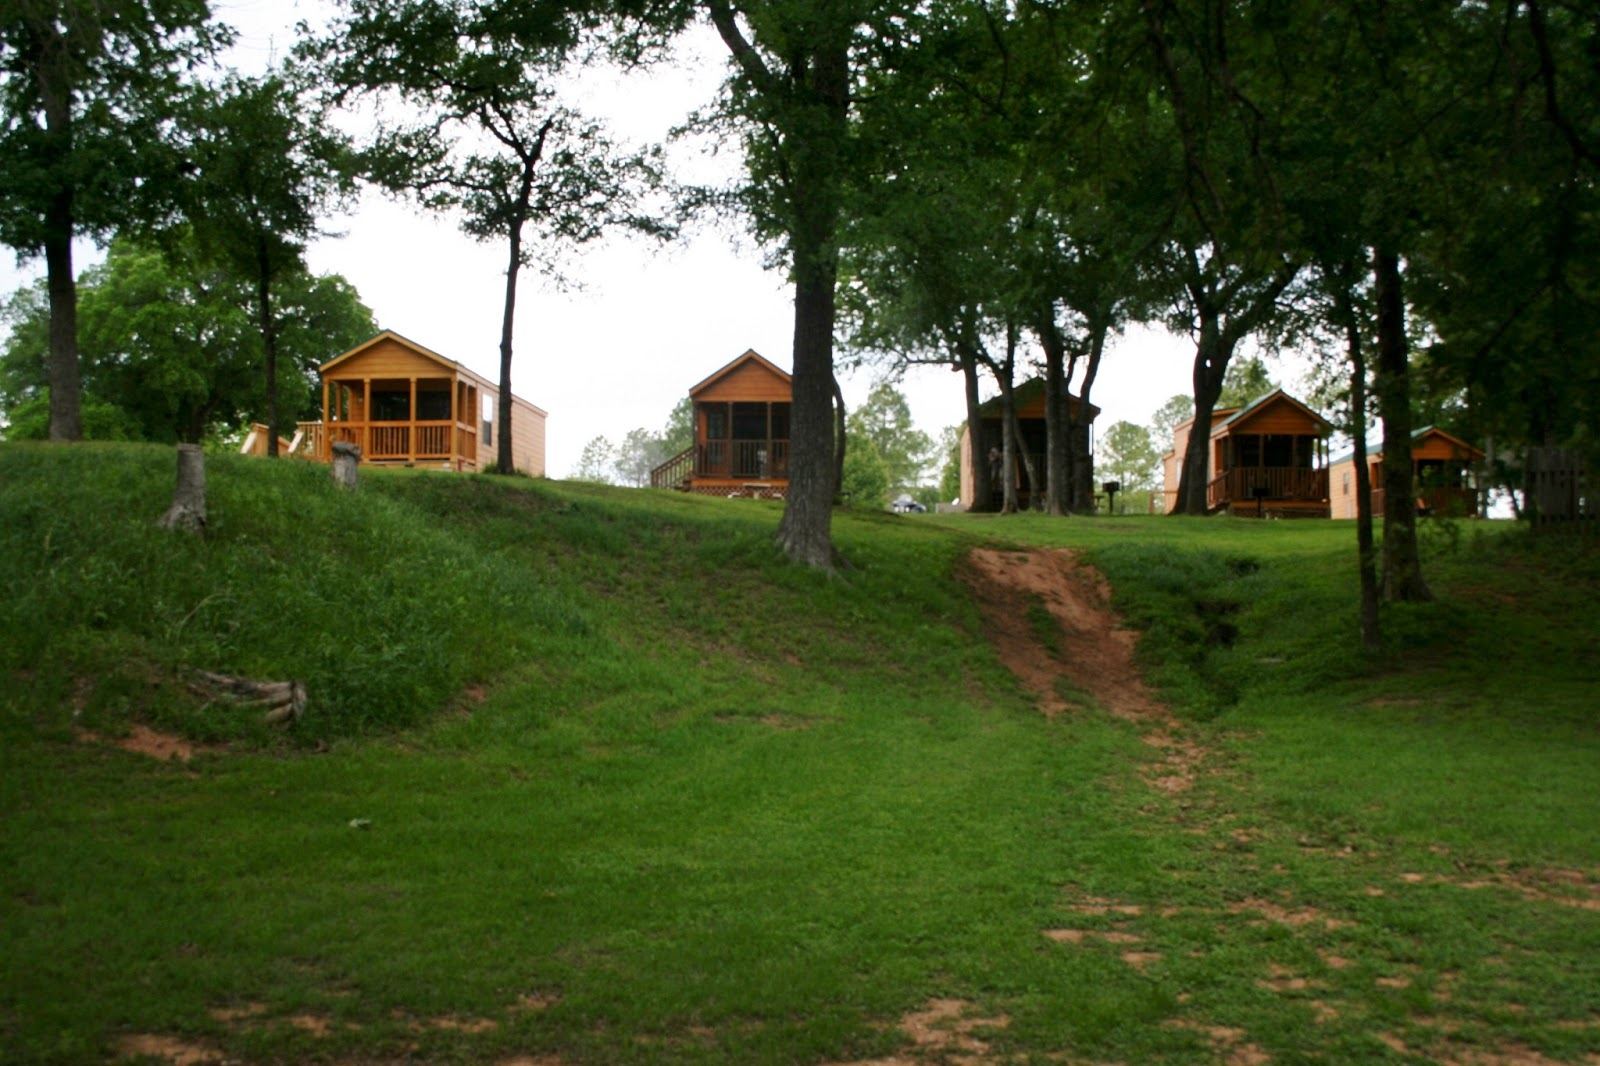 Looking Up From The Brazos River Side, You Can See Some Of Their Newer  Cabins That Are For Rent. Just Beyond These Cabins Is Another Path That  Leads You ...